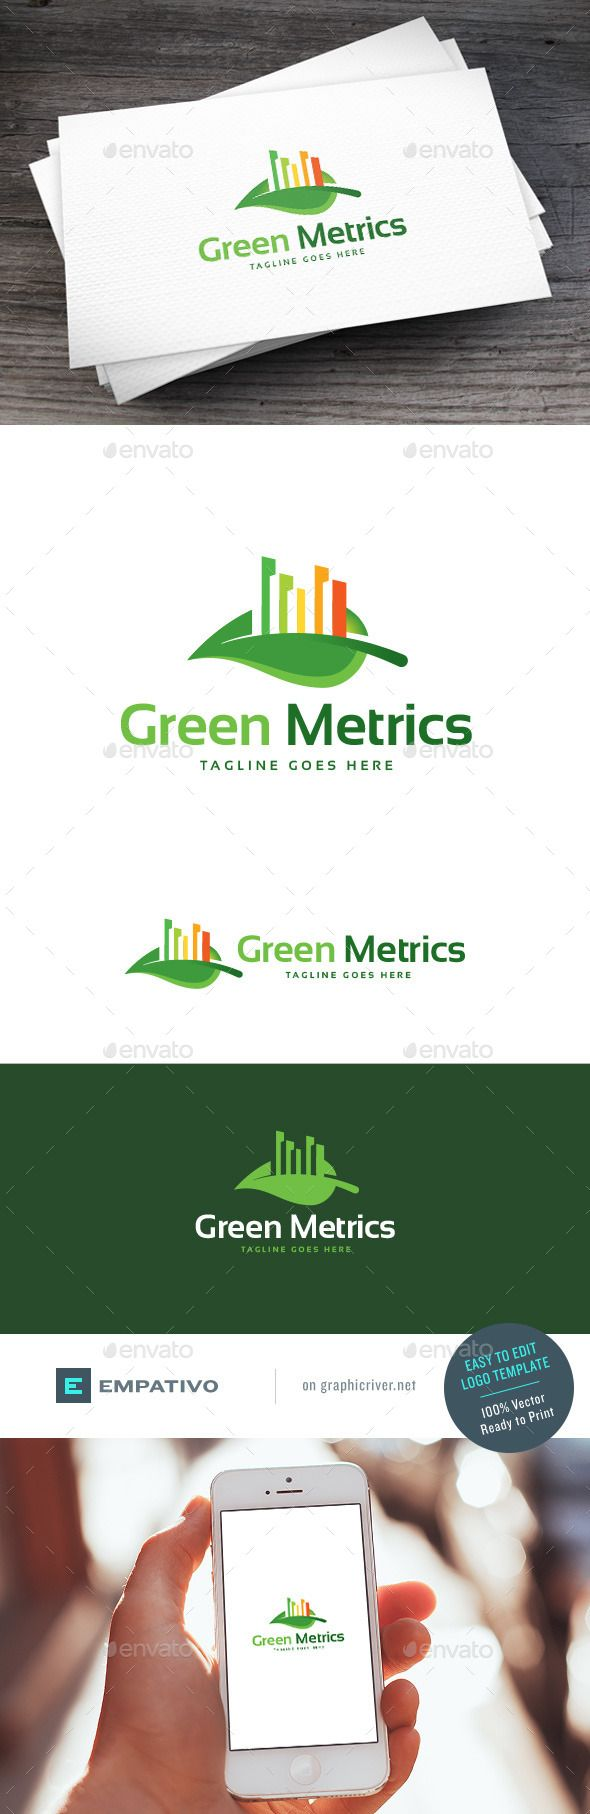 Green Metrics Logo Template by empativo Modern, versatile and stylish logo template. Ideal for a wide range of uses. Features  100% vector. Easy to edit color / text